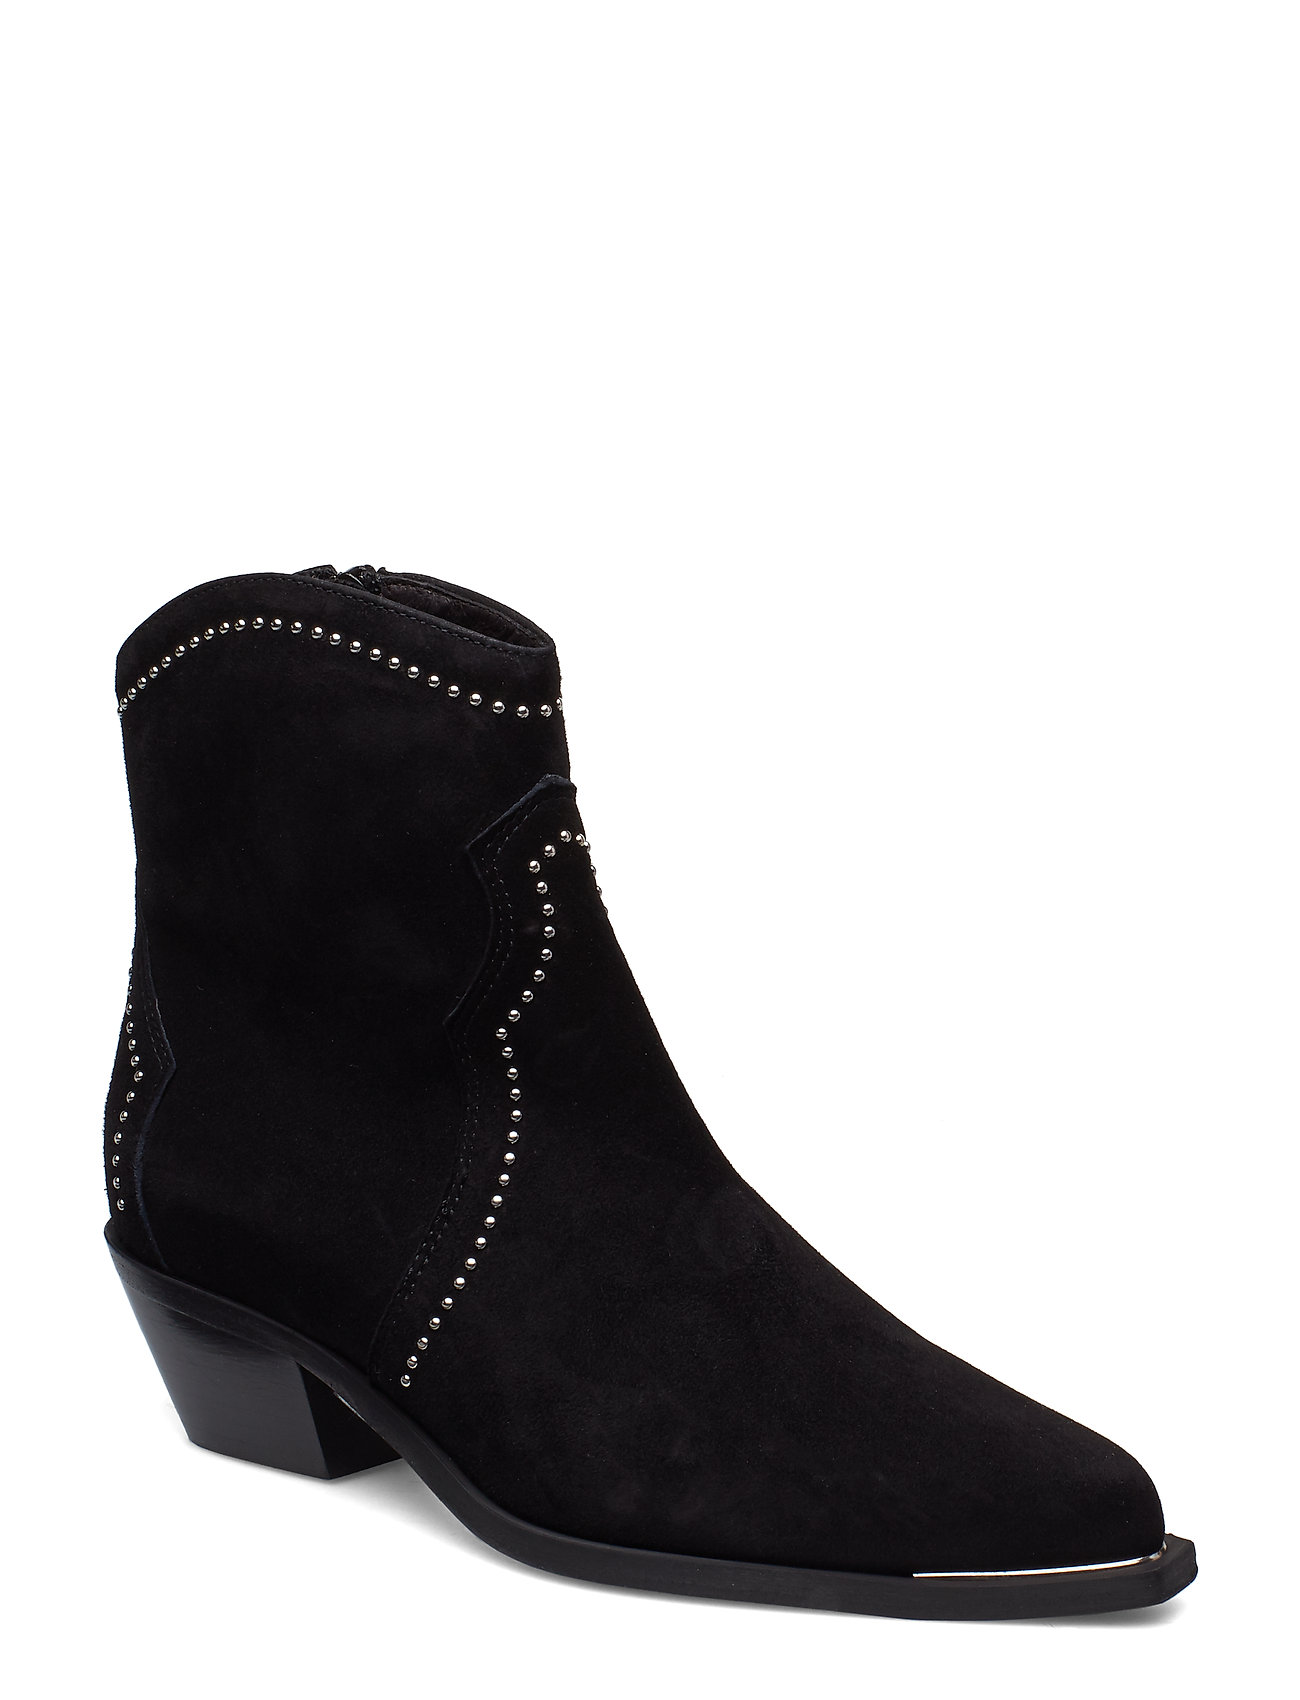 Image of Booties 3703 Shoes Boots Ankle Boots Ankle Boots With Heel Sort Billi Bi (3203601137)